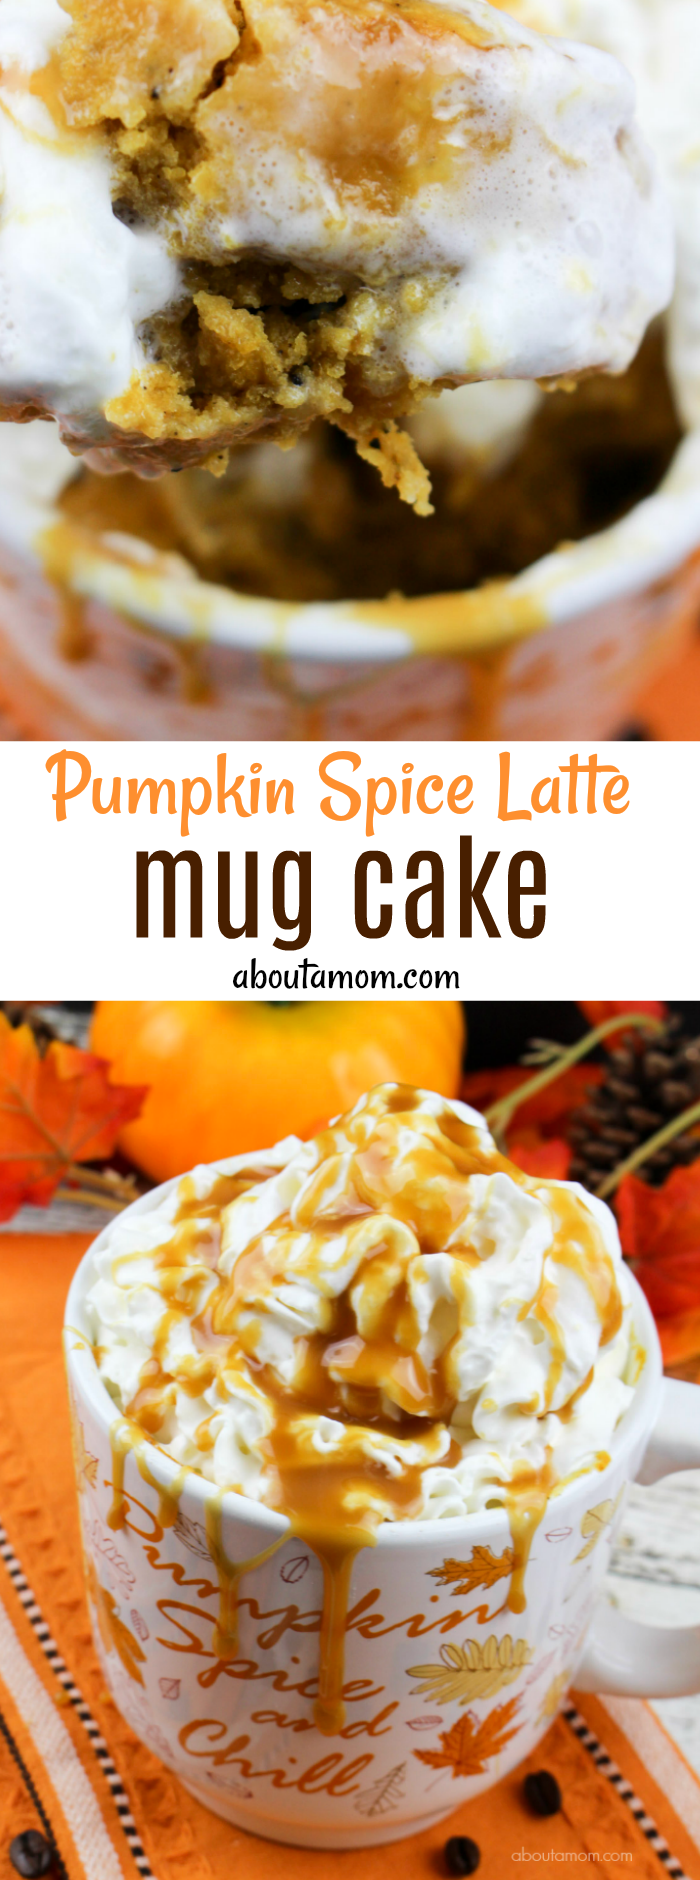 Pumpkin Spice Latte Mug Cake Recipe - Dessert doesn't get any easier than this!